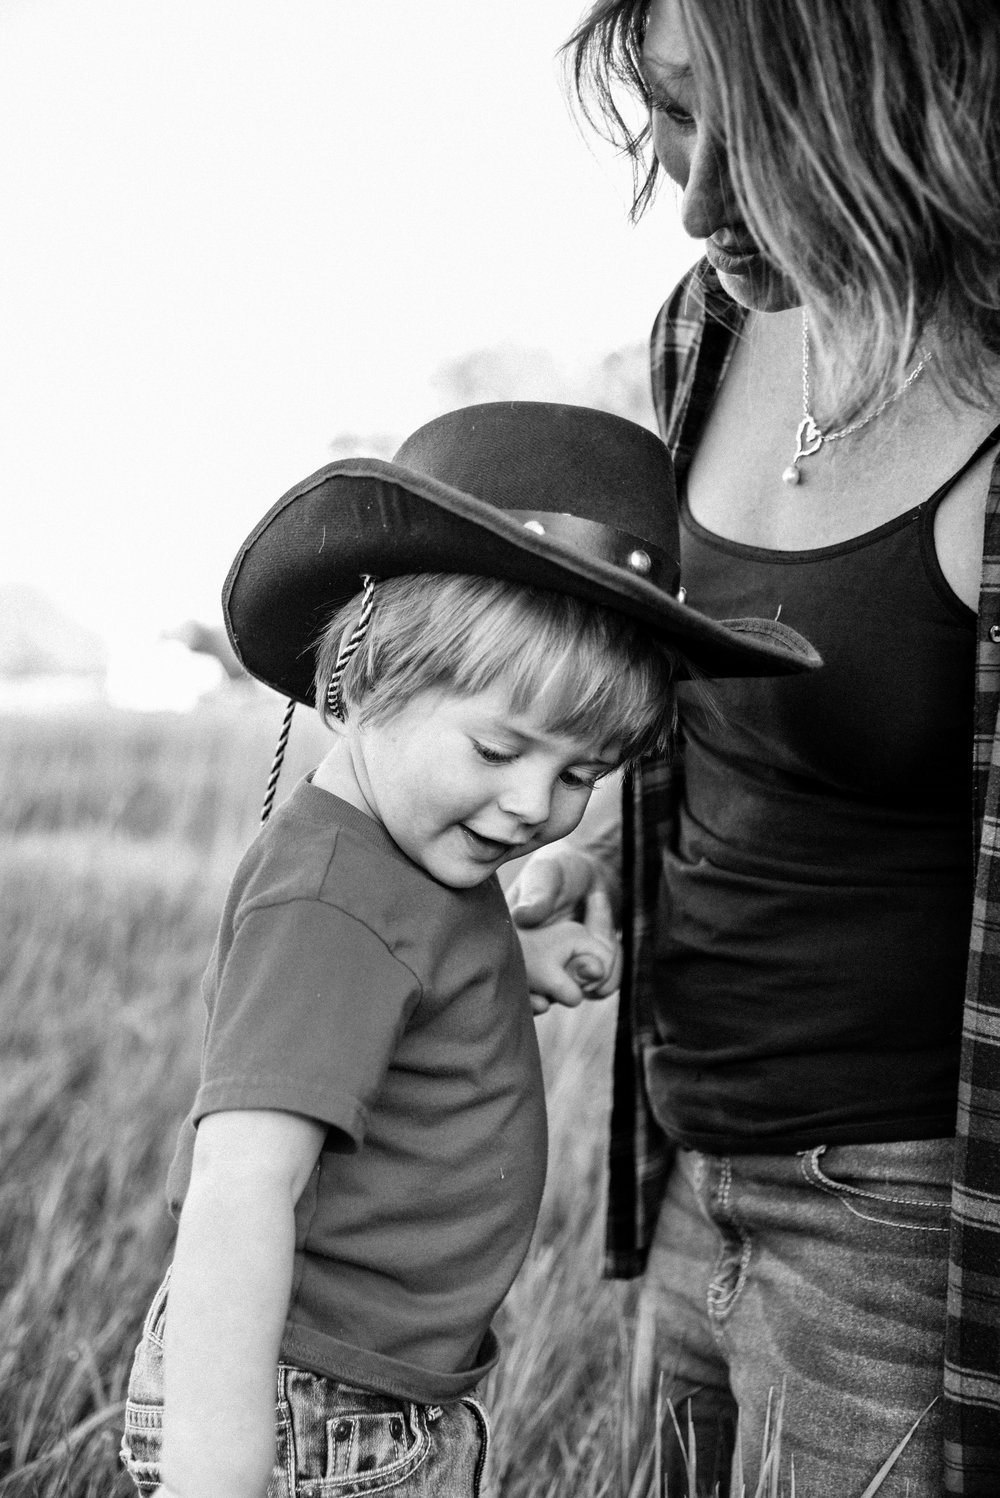 Denver Family Portrait Photographer| Kristen Rush Photography, www.kristenrushphotography.com | Denver, CO